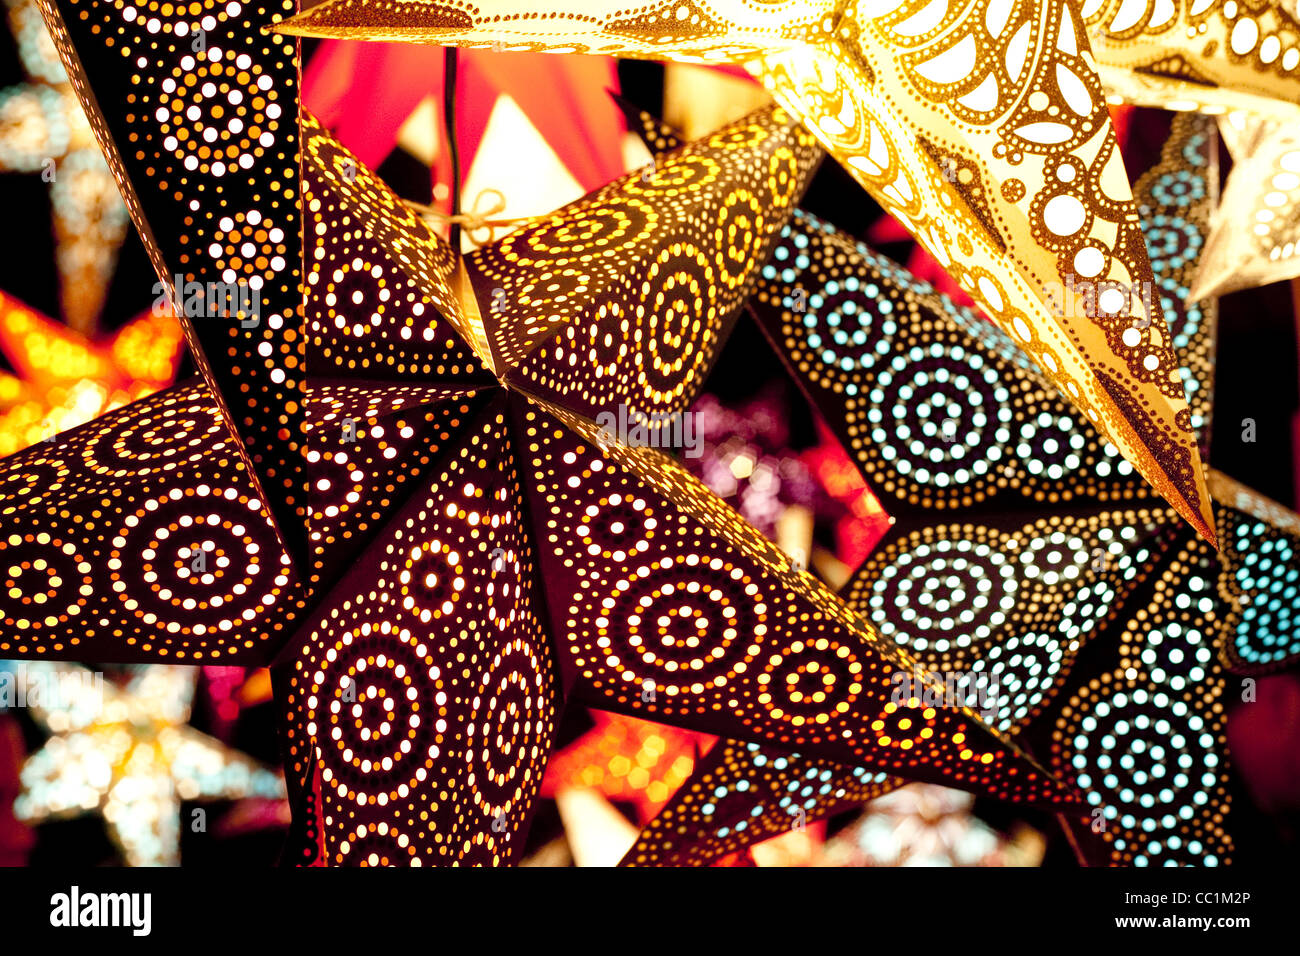 Bright colourful and dynamic lit up paper stars hang in a Christmas market in Munich, Germany. - Stock Image